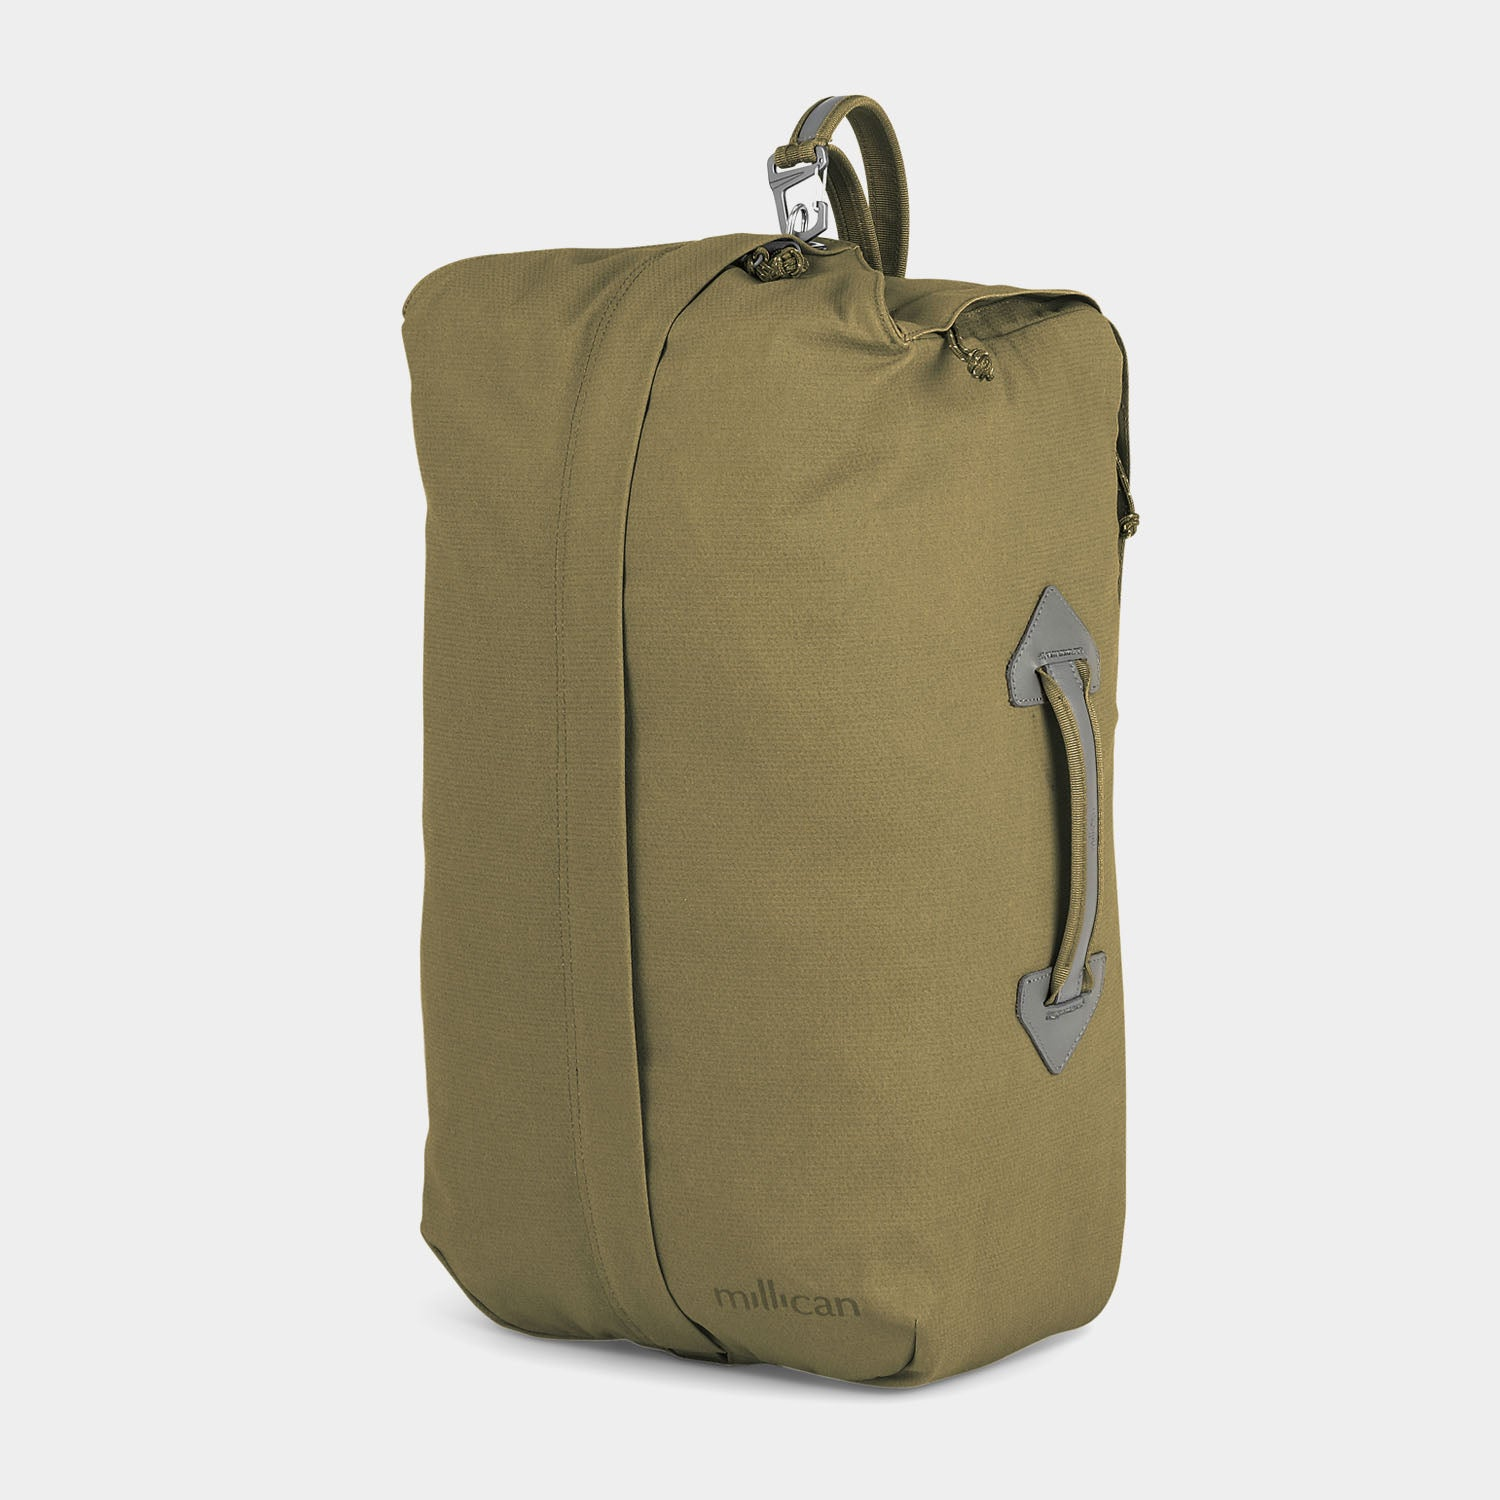 Millican 'Miles The Duffle Bag' 40L Moss